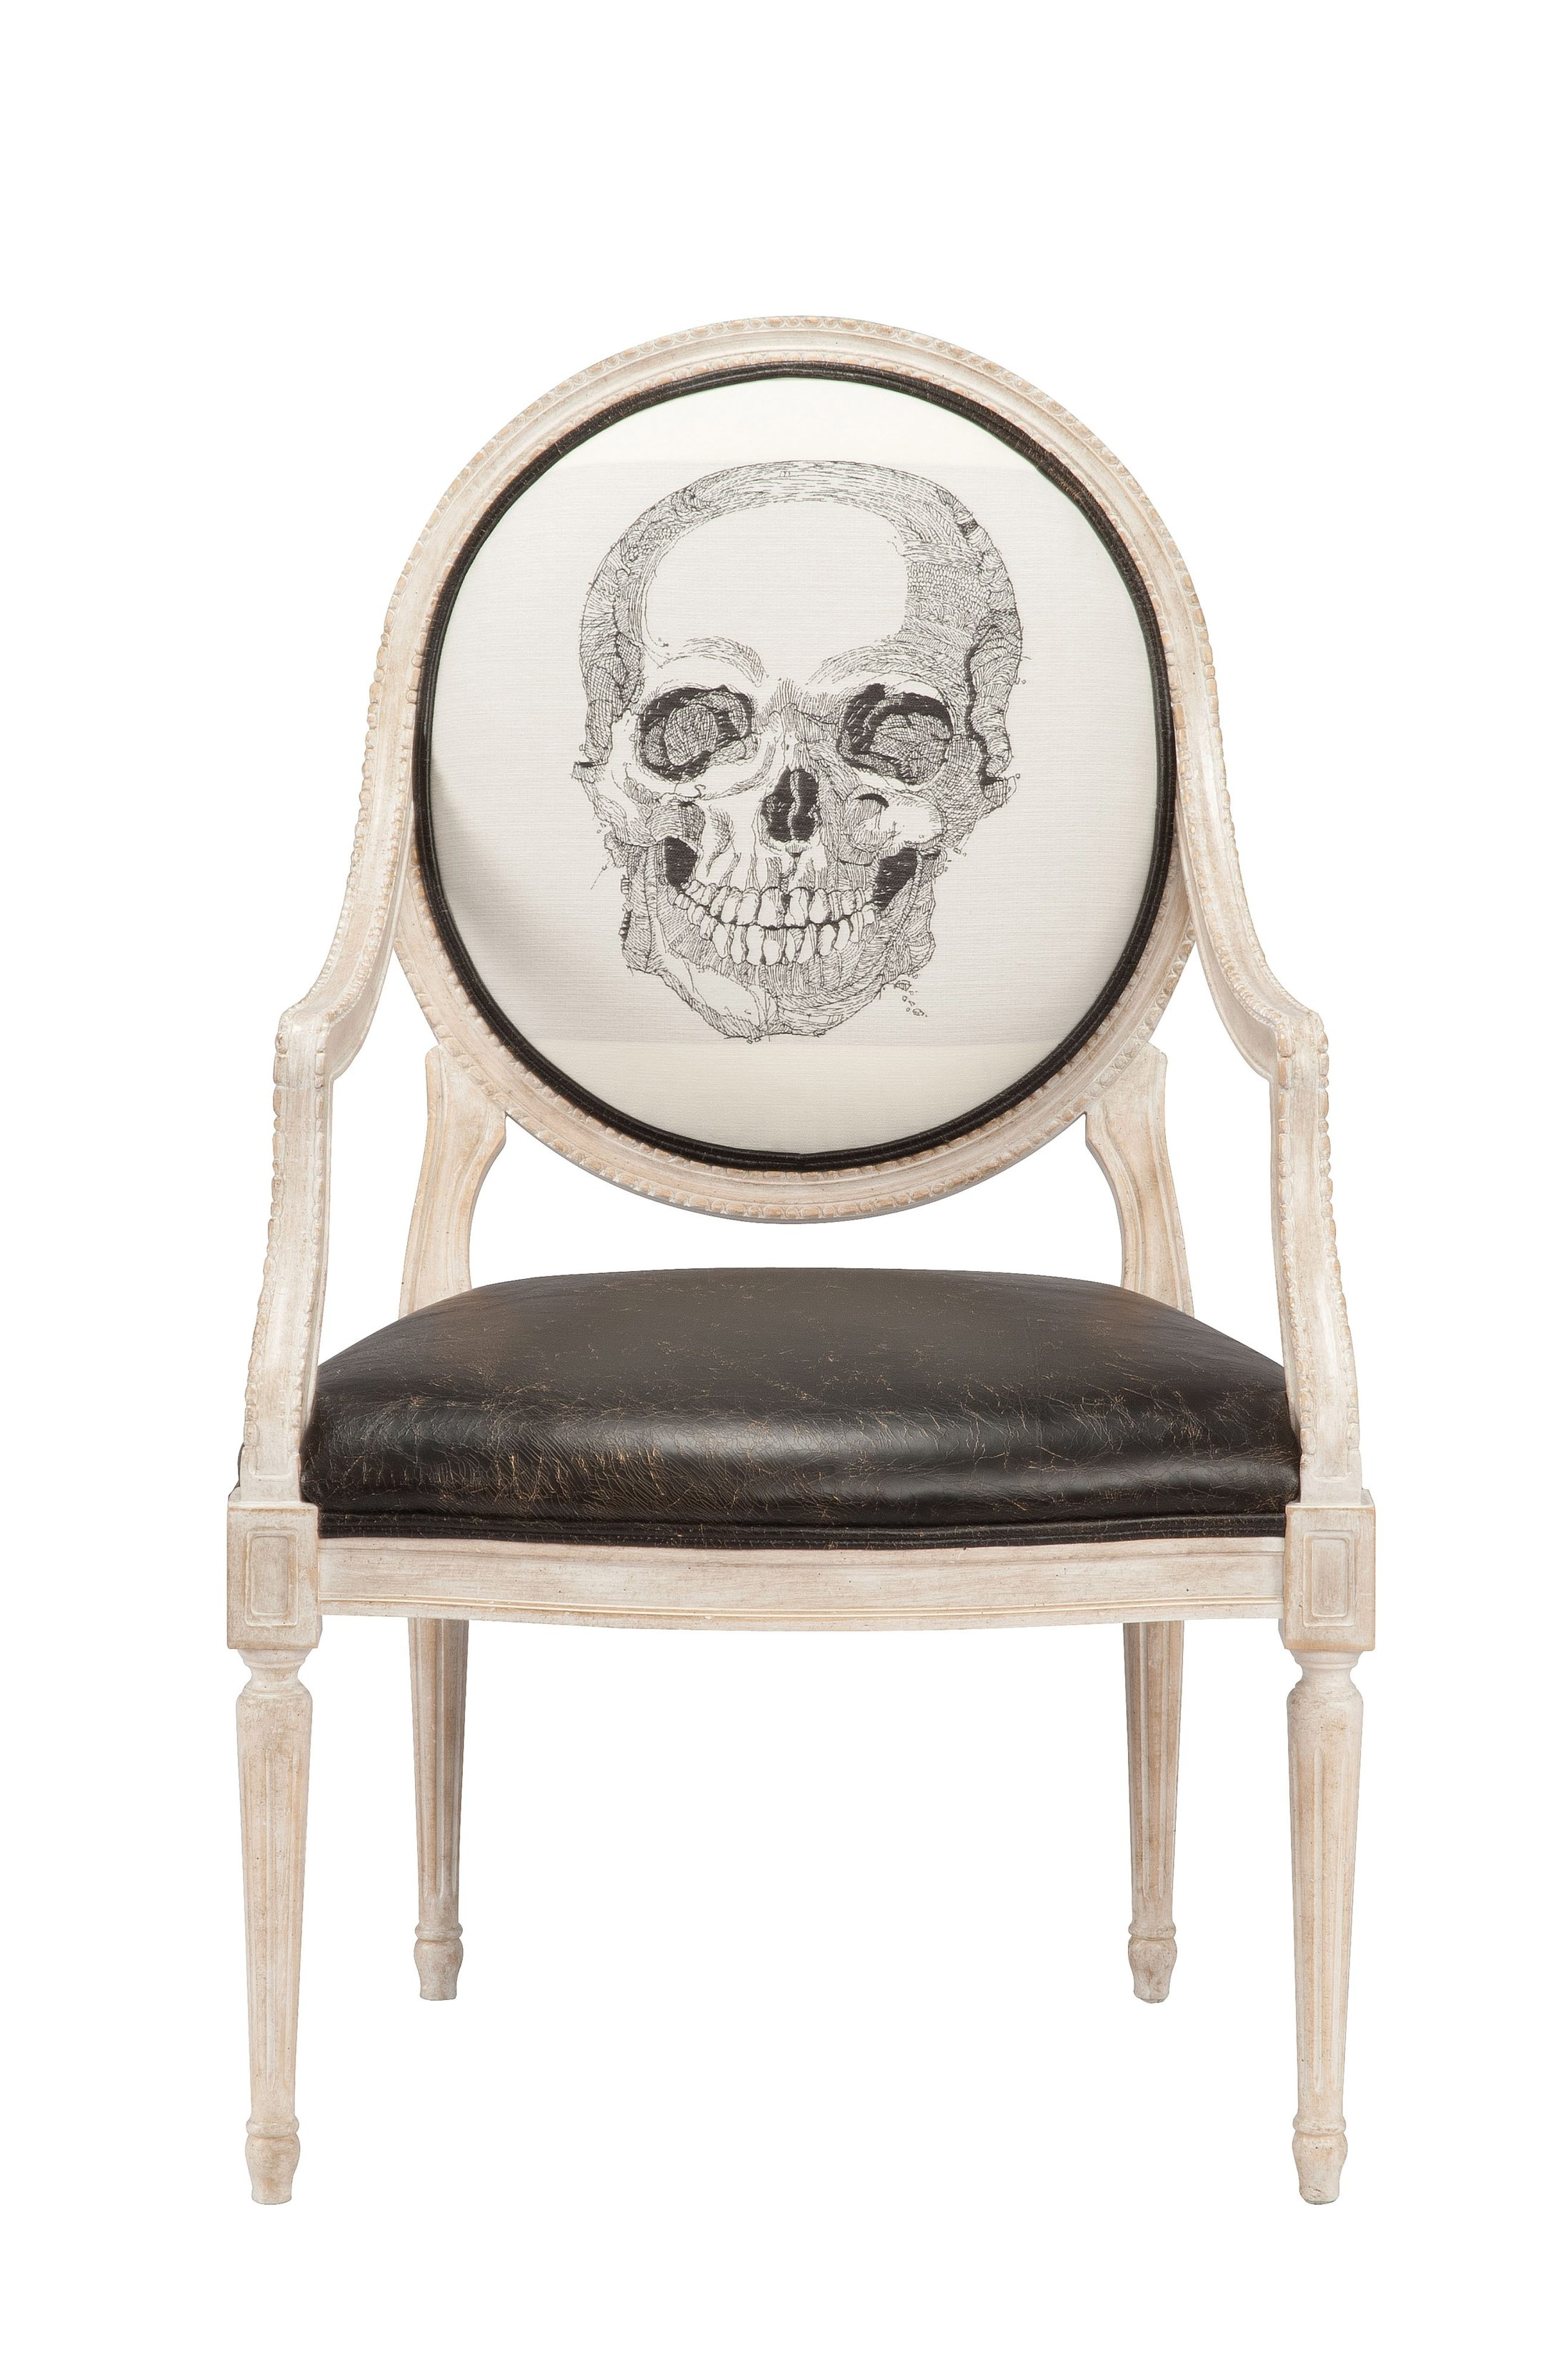 Here's looking at you: Skull lamp and chair with skull upholstery are from Currey & Company.